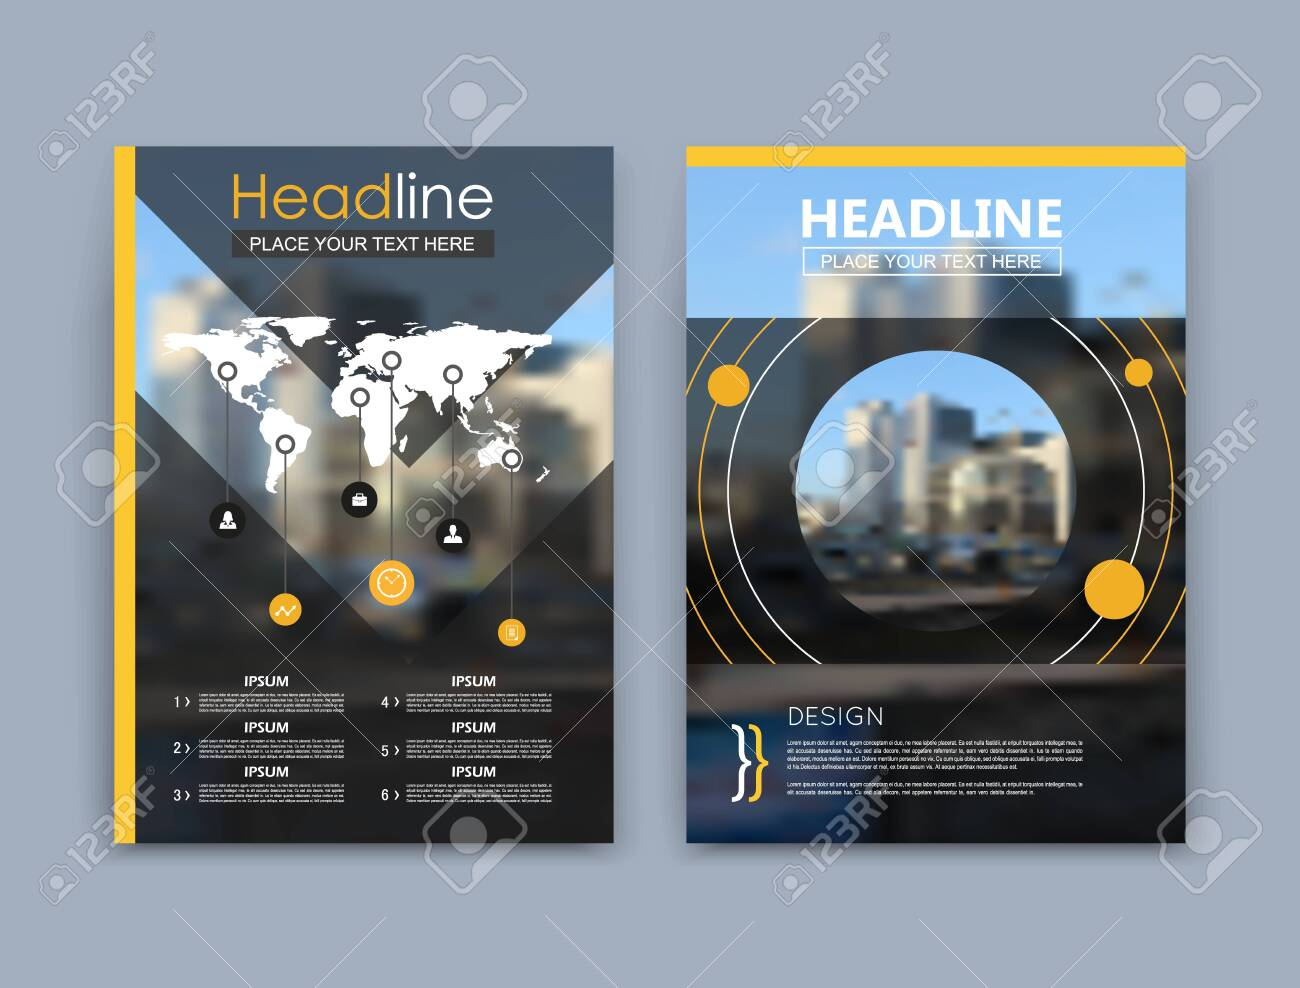 Abstract a4 brochure cover design. Black text frame surface. Urban city view font. Title sheet model set. Modern vector front page. Firm banner texture. Yellow circle figure icon. Round ad flyer fiber - 151363273